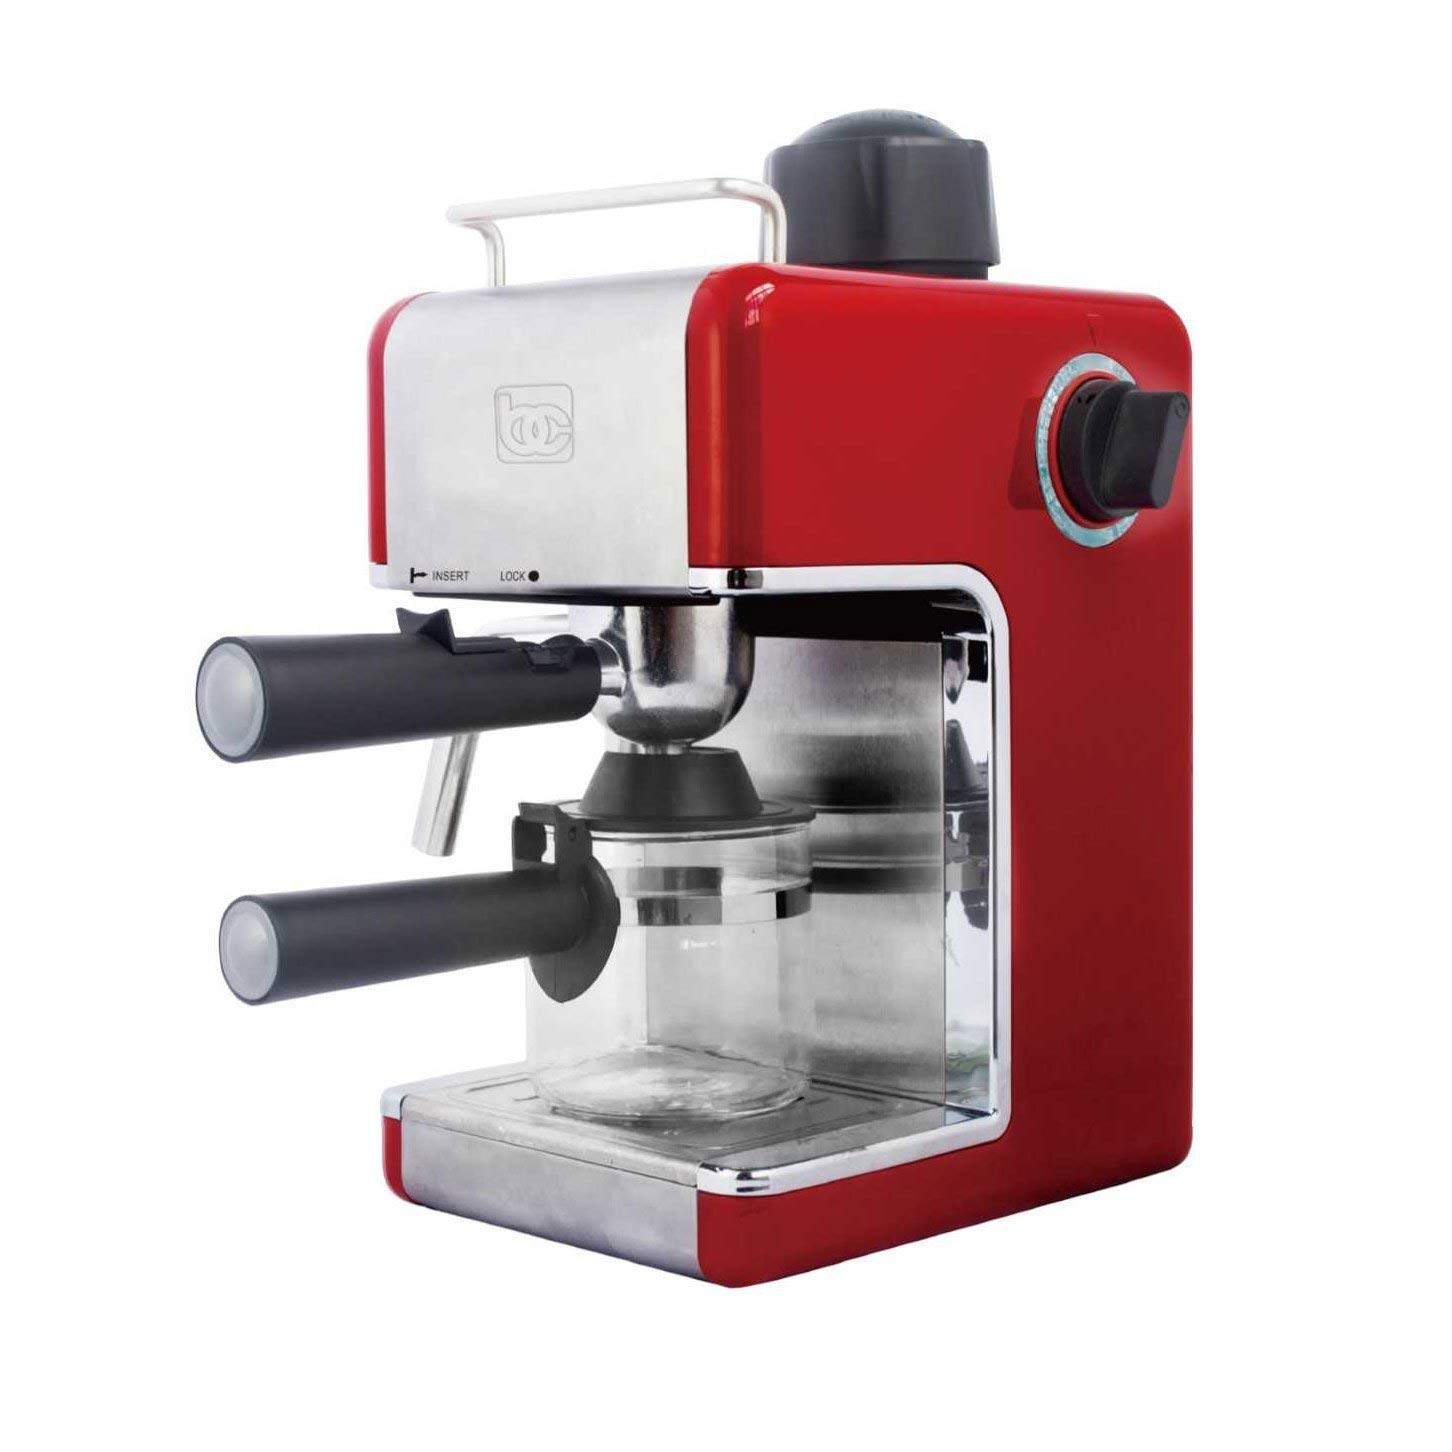 Bene Casa BC-99148 4-Cup Red Espresso Maker with Frother by MBR (Image #1)